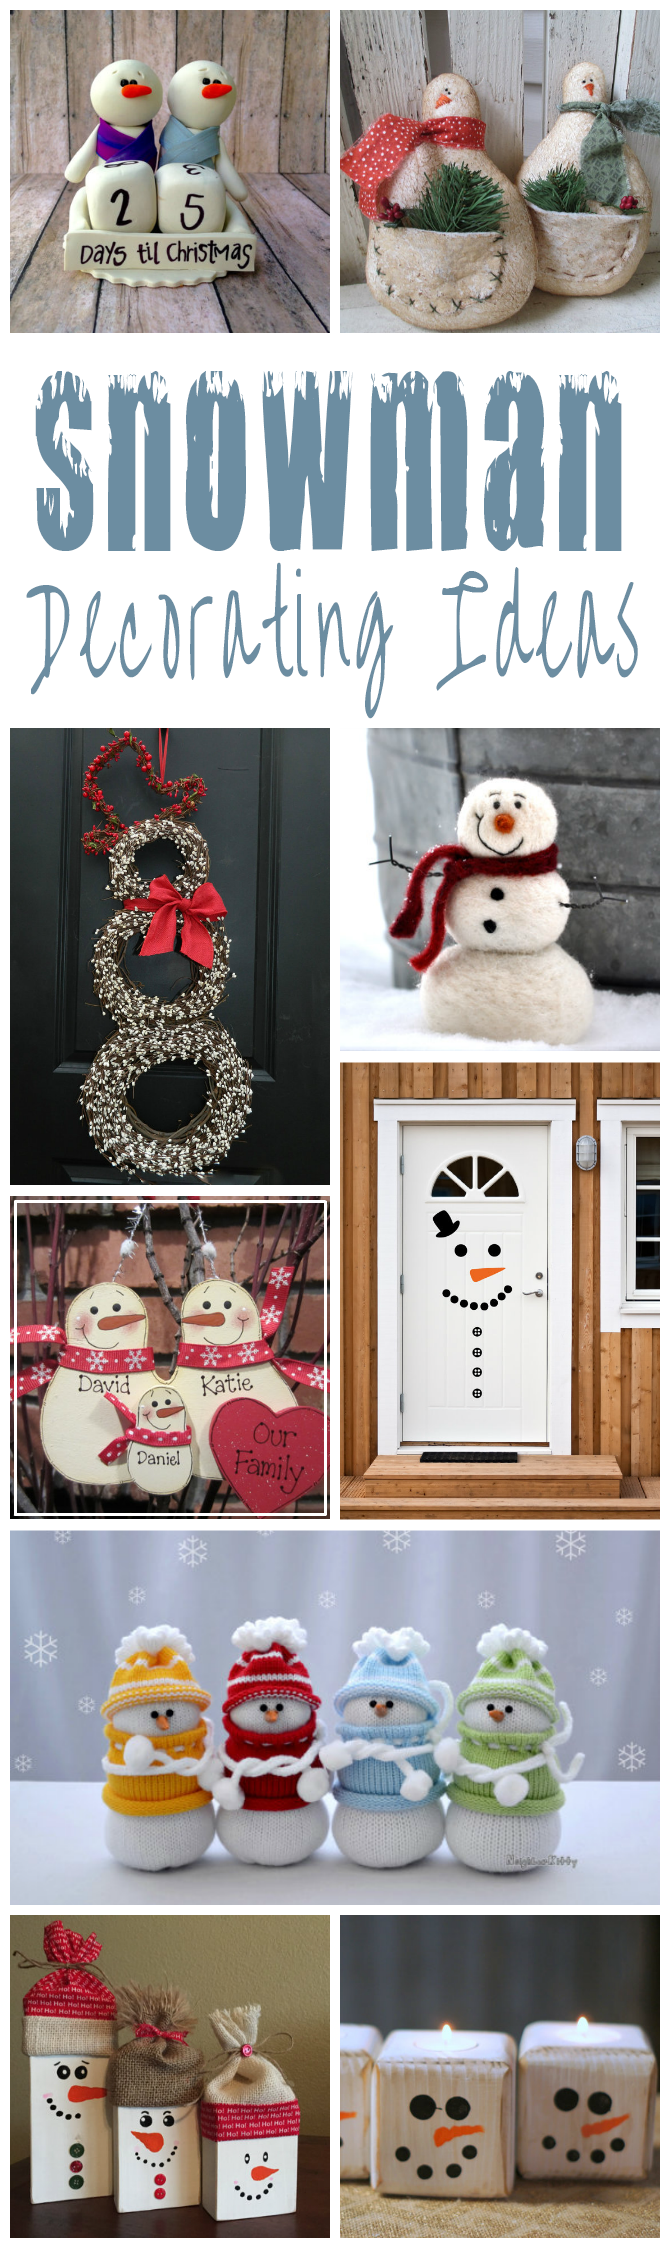 Snowman Decorating Ideas For Christmas     Glitter  N Spice Snowman Decorating Ideas For Christmas